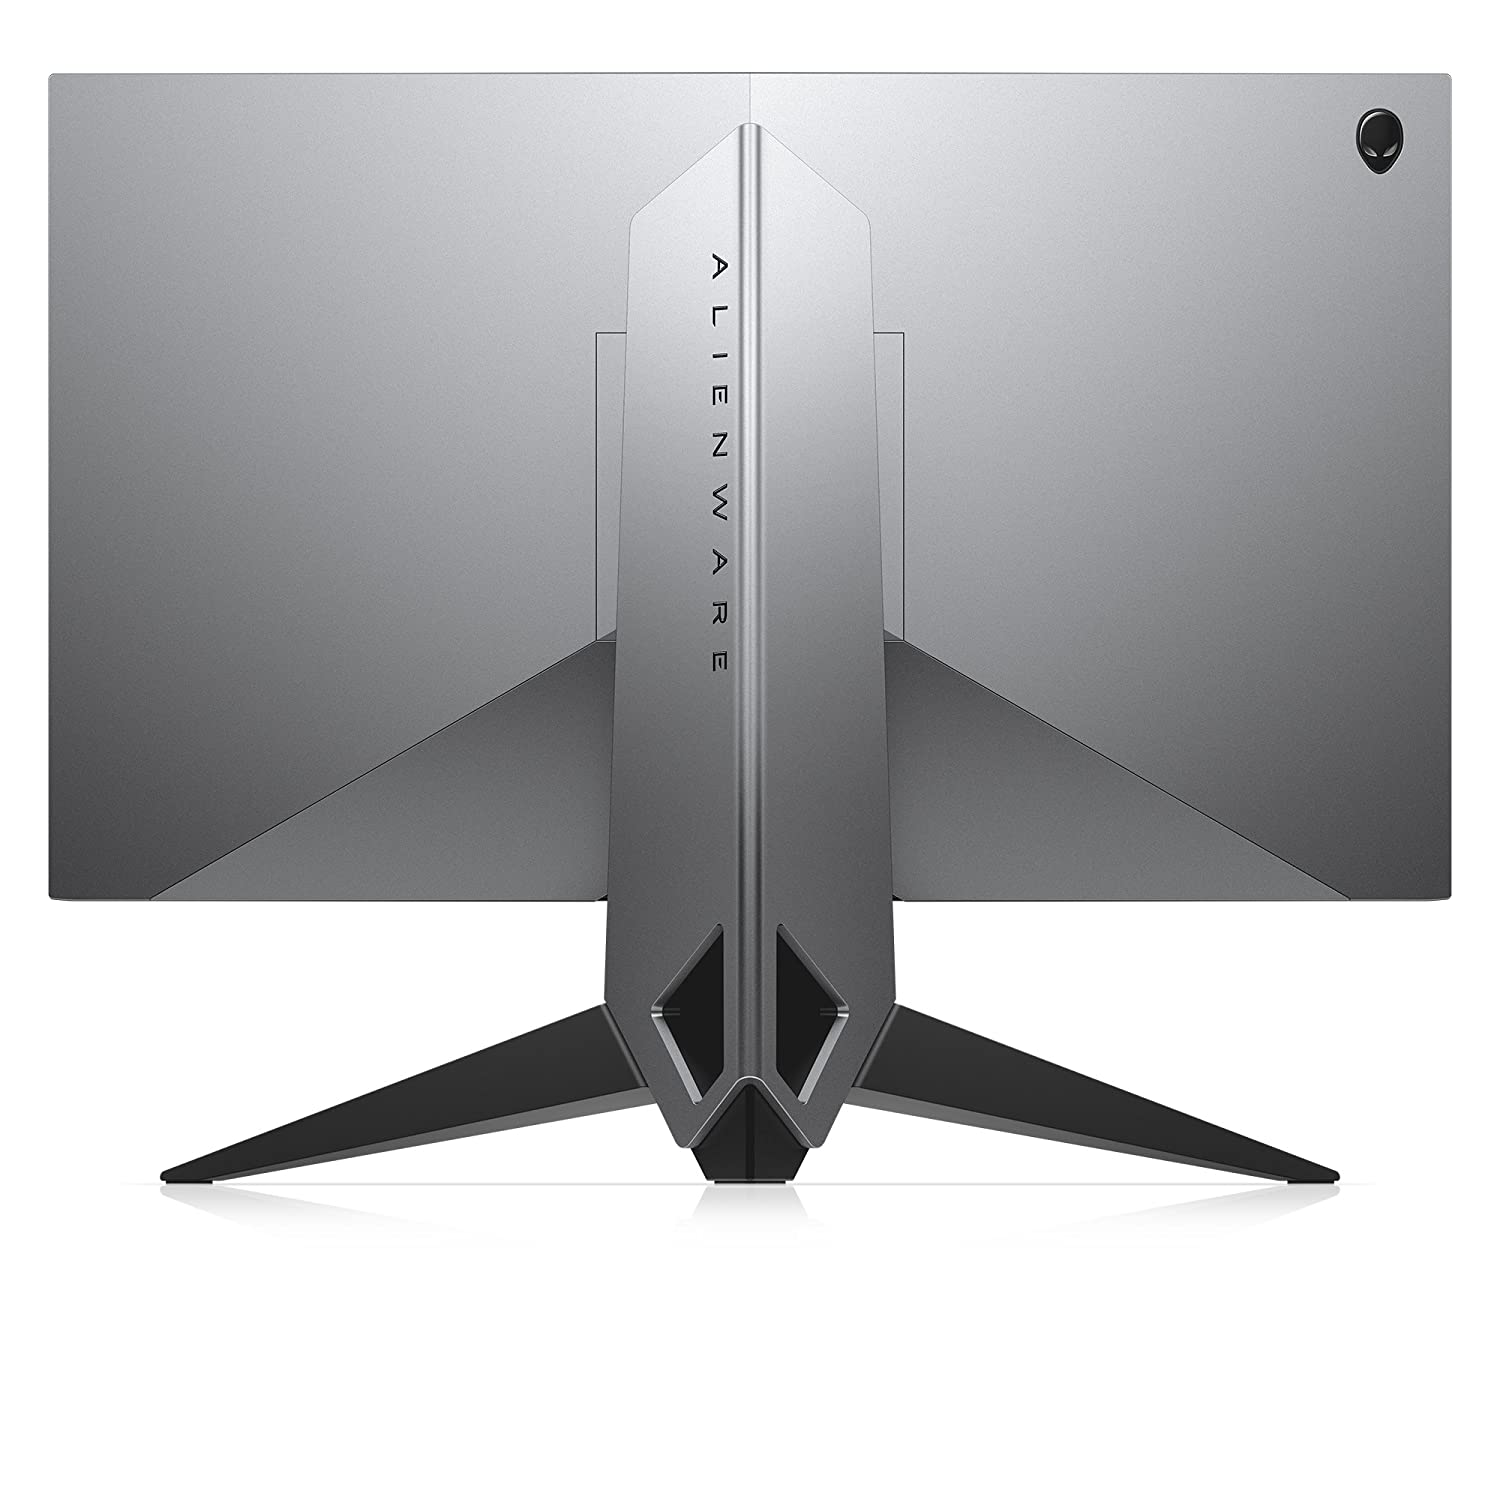 Dell Alienware AW2518HF 62,2cm 16:9 FHD Gaming Monitor: Amazon.de:  Elektronik